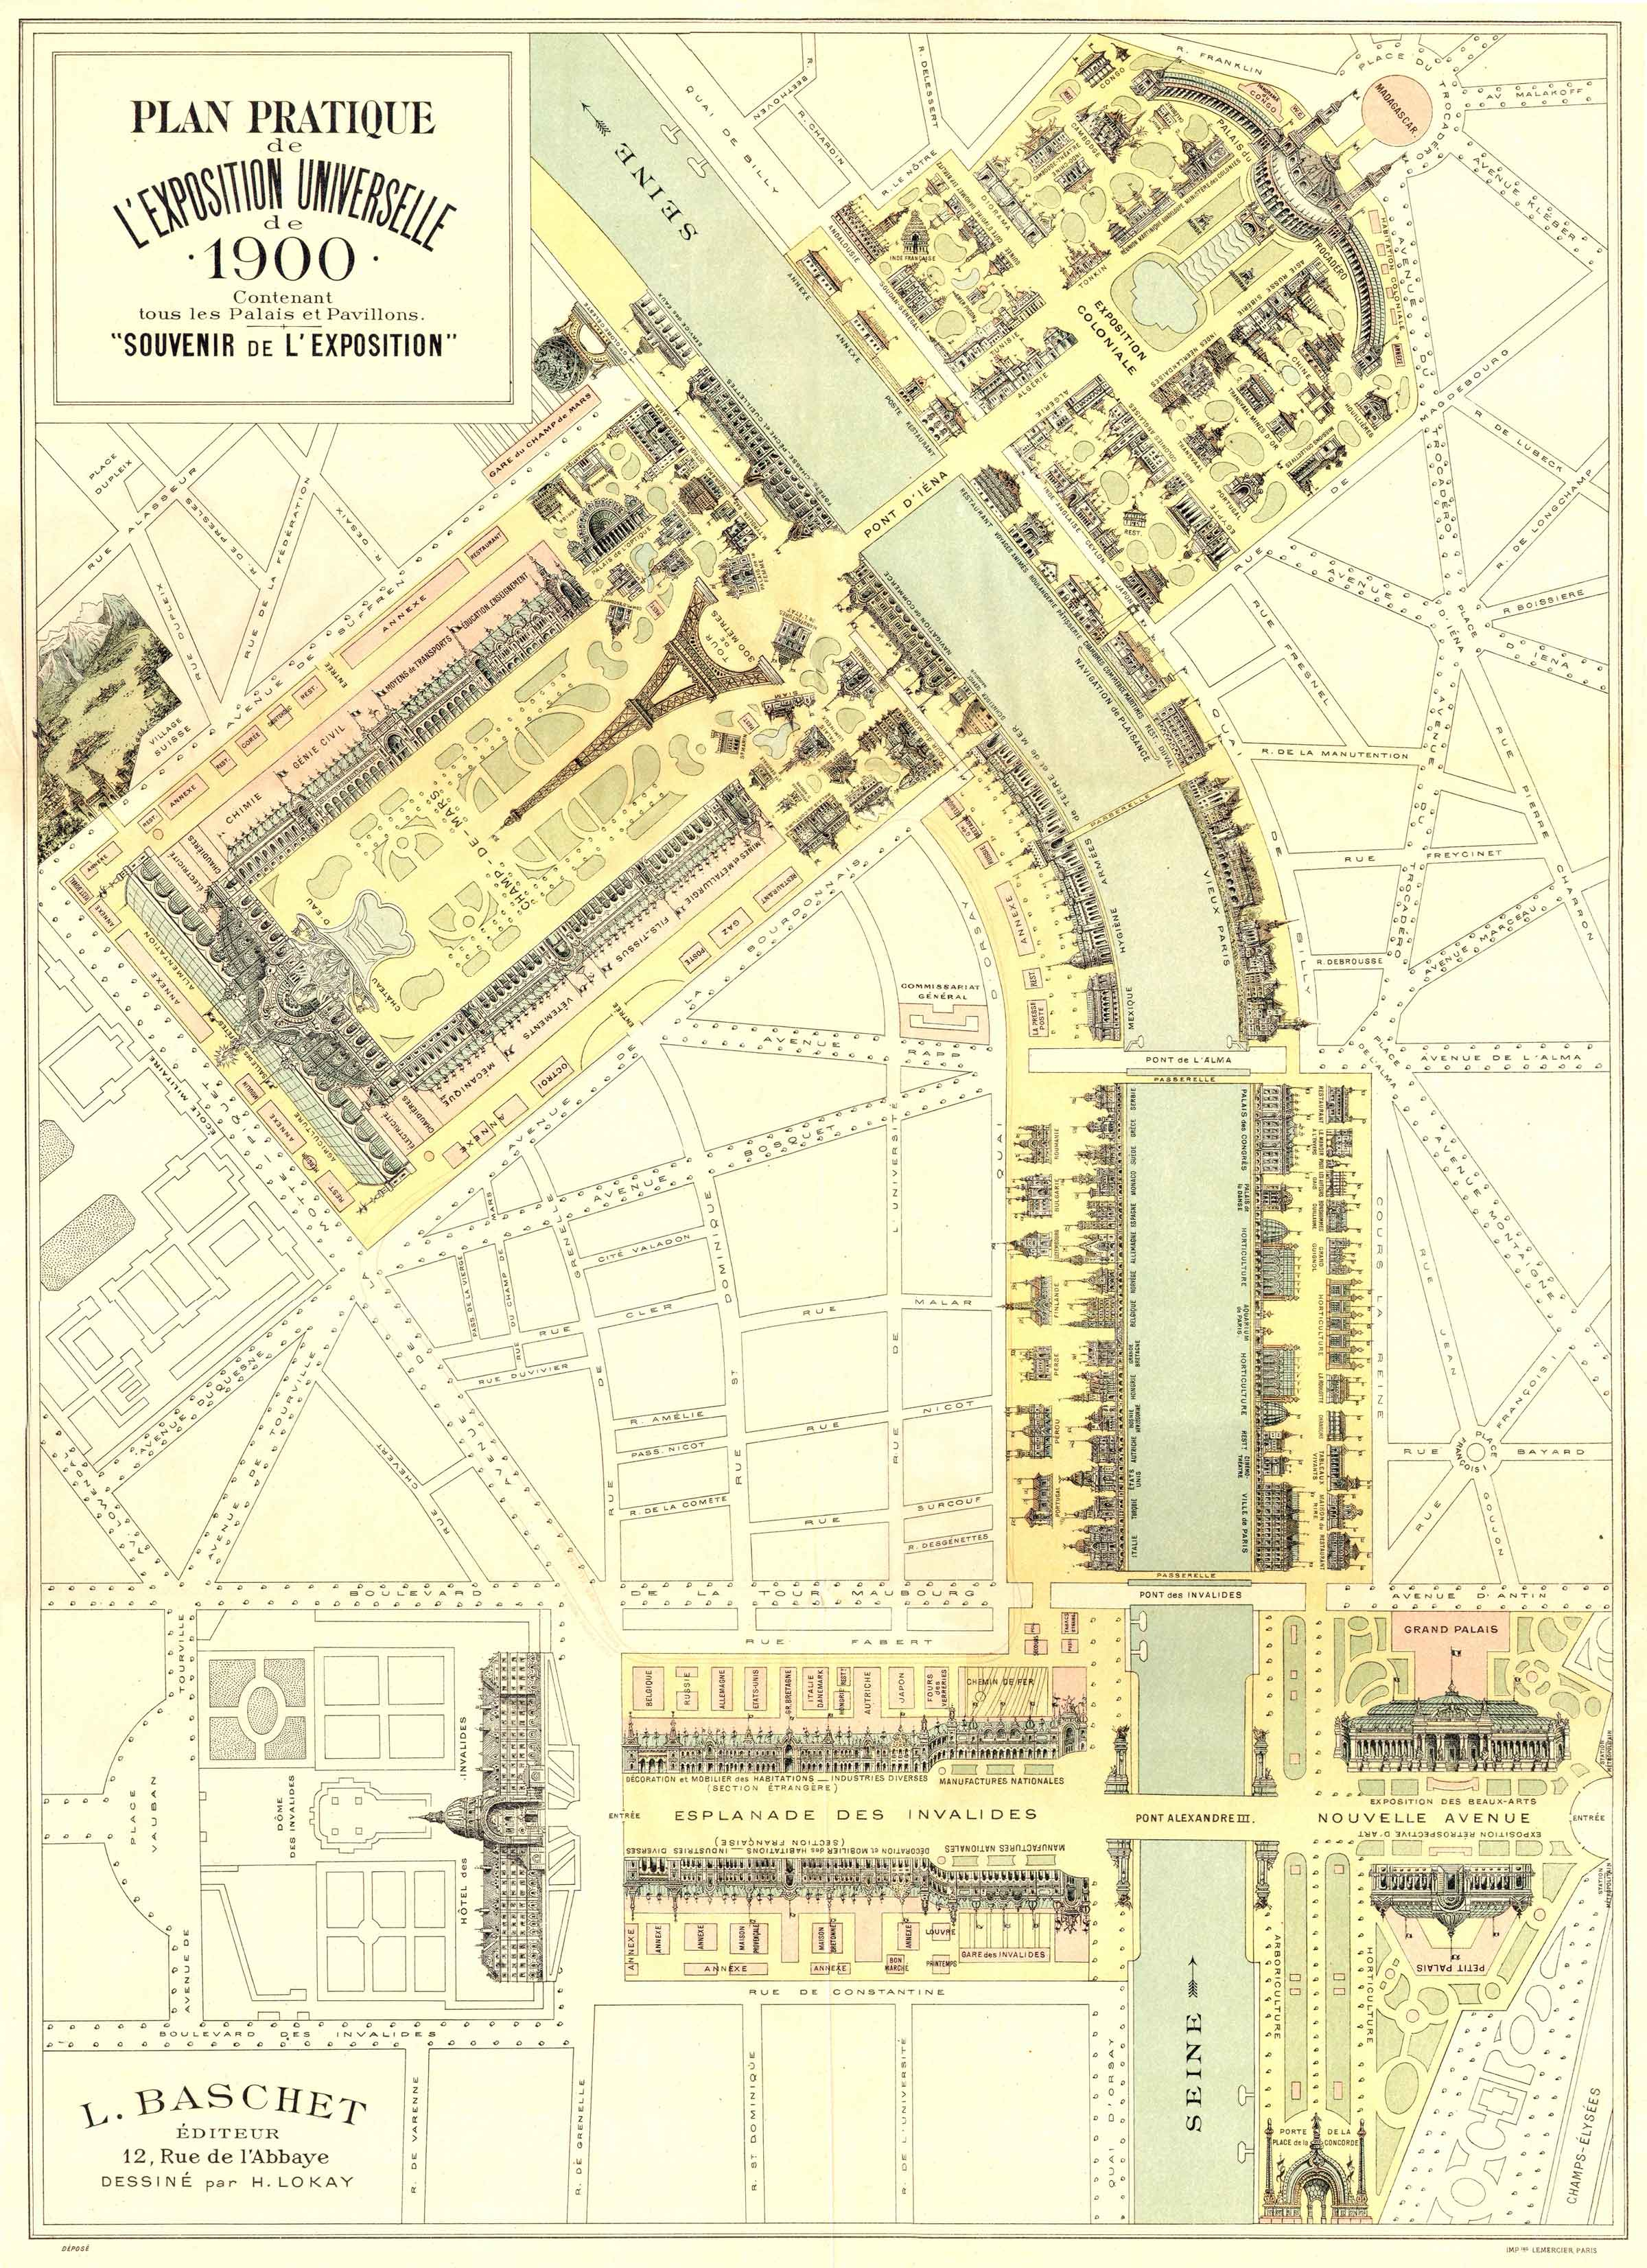 The map of the Paris world fair's buildings, 1900